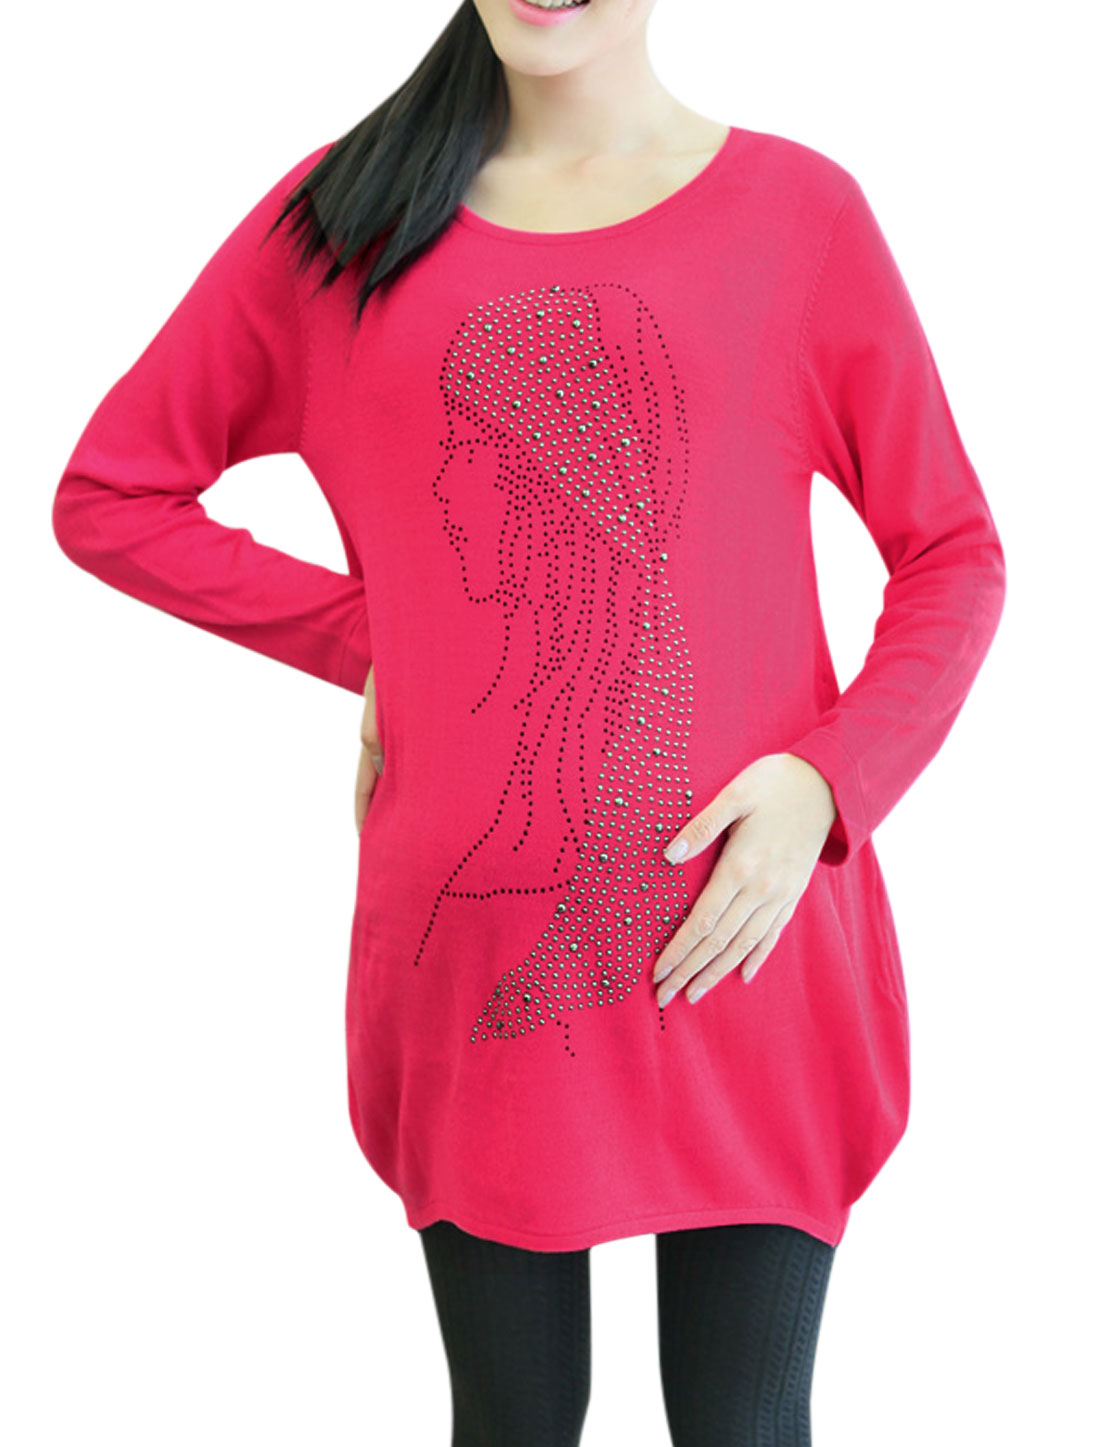 Maternity Portrait Studded Decor Curved Hem Soft Tunic Sweater Fuchsia M